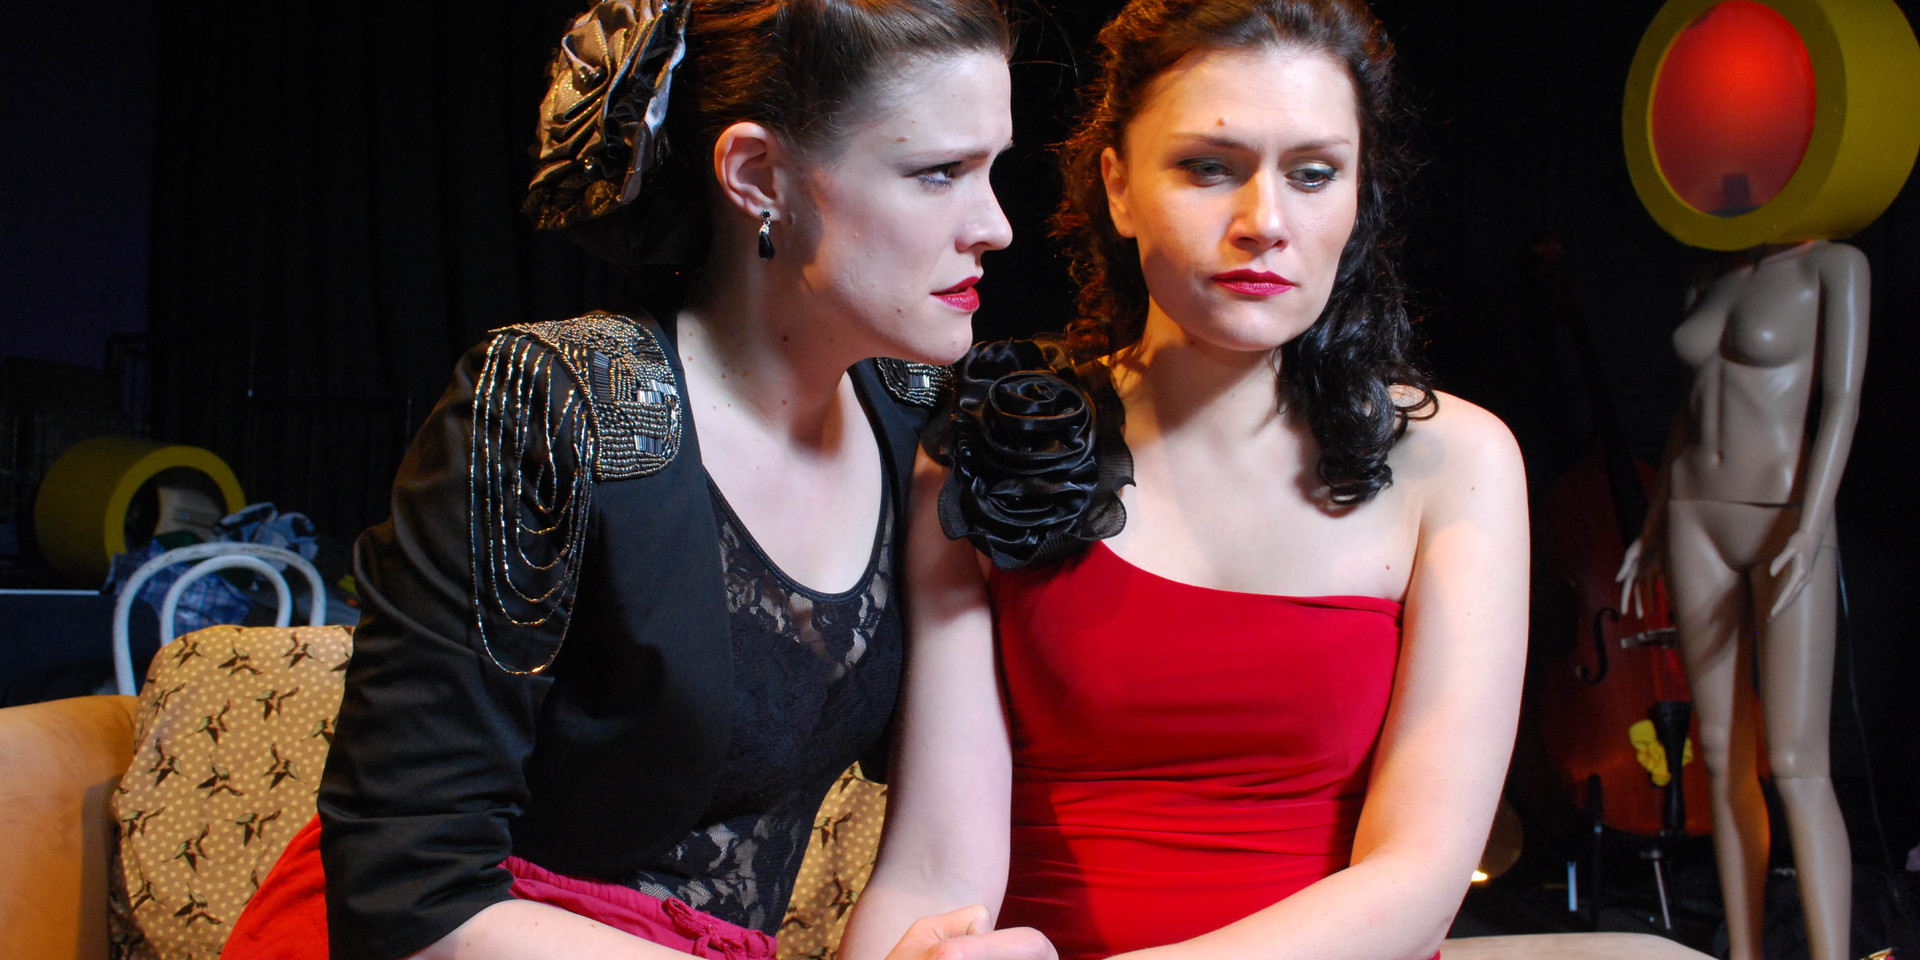 Scenes from our production of 'La traviata'